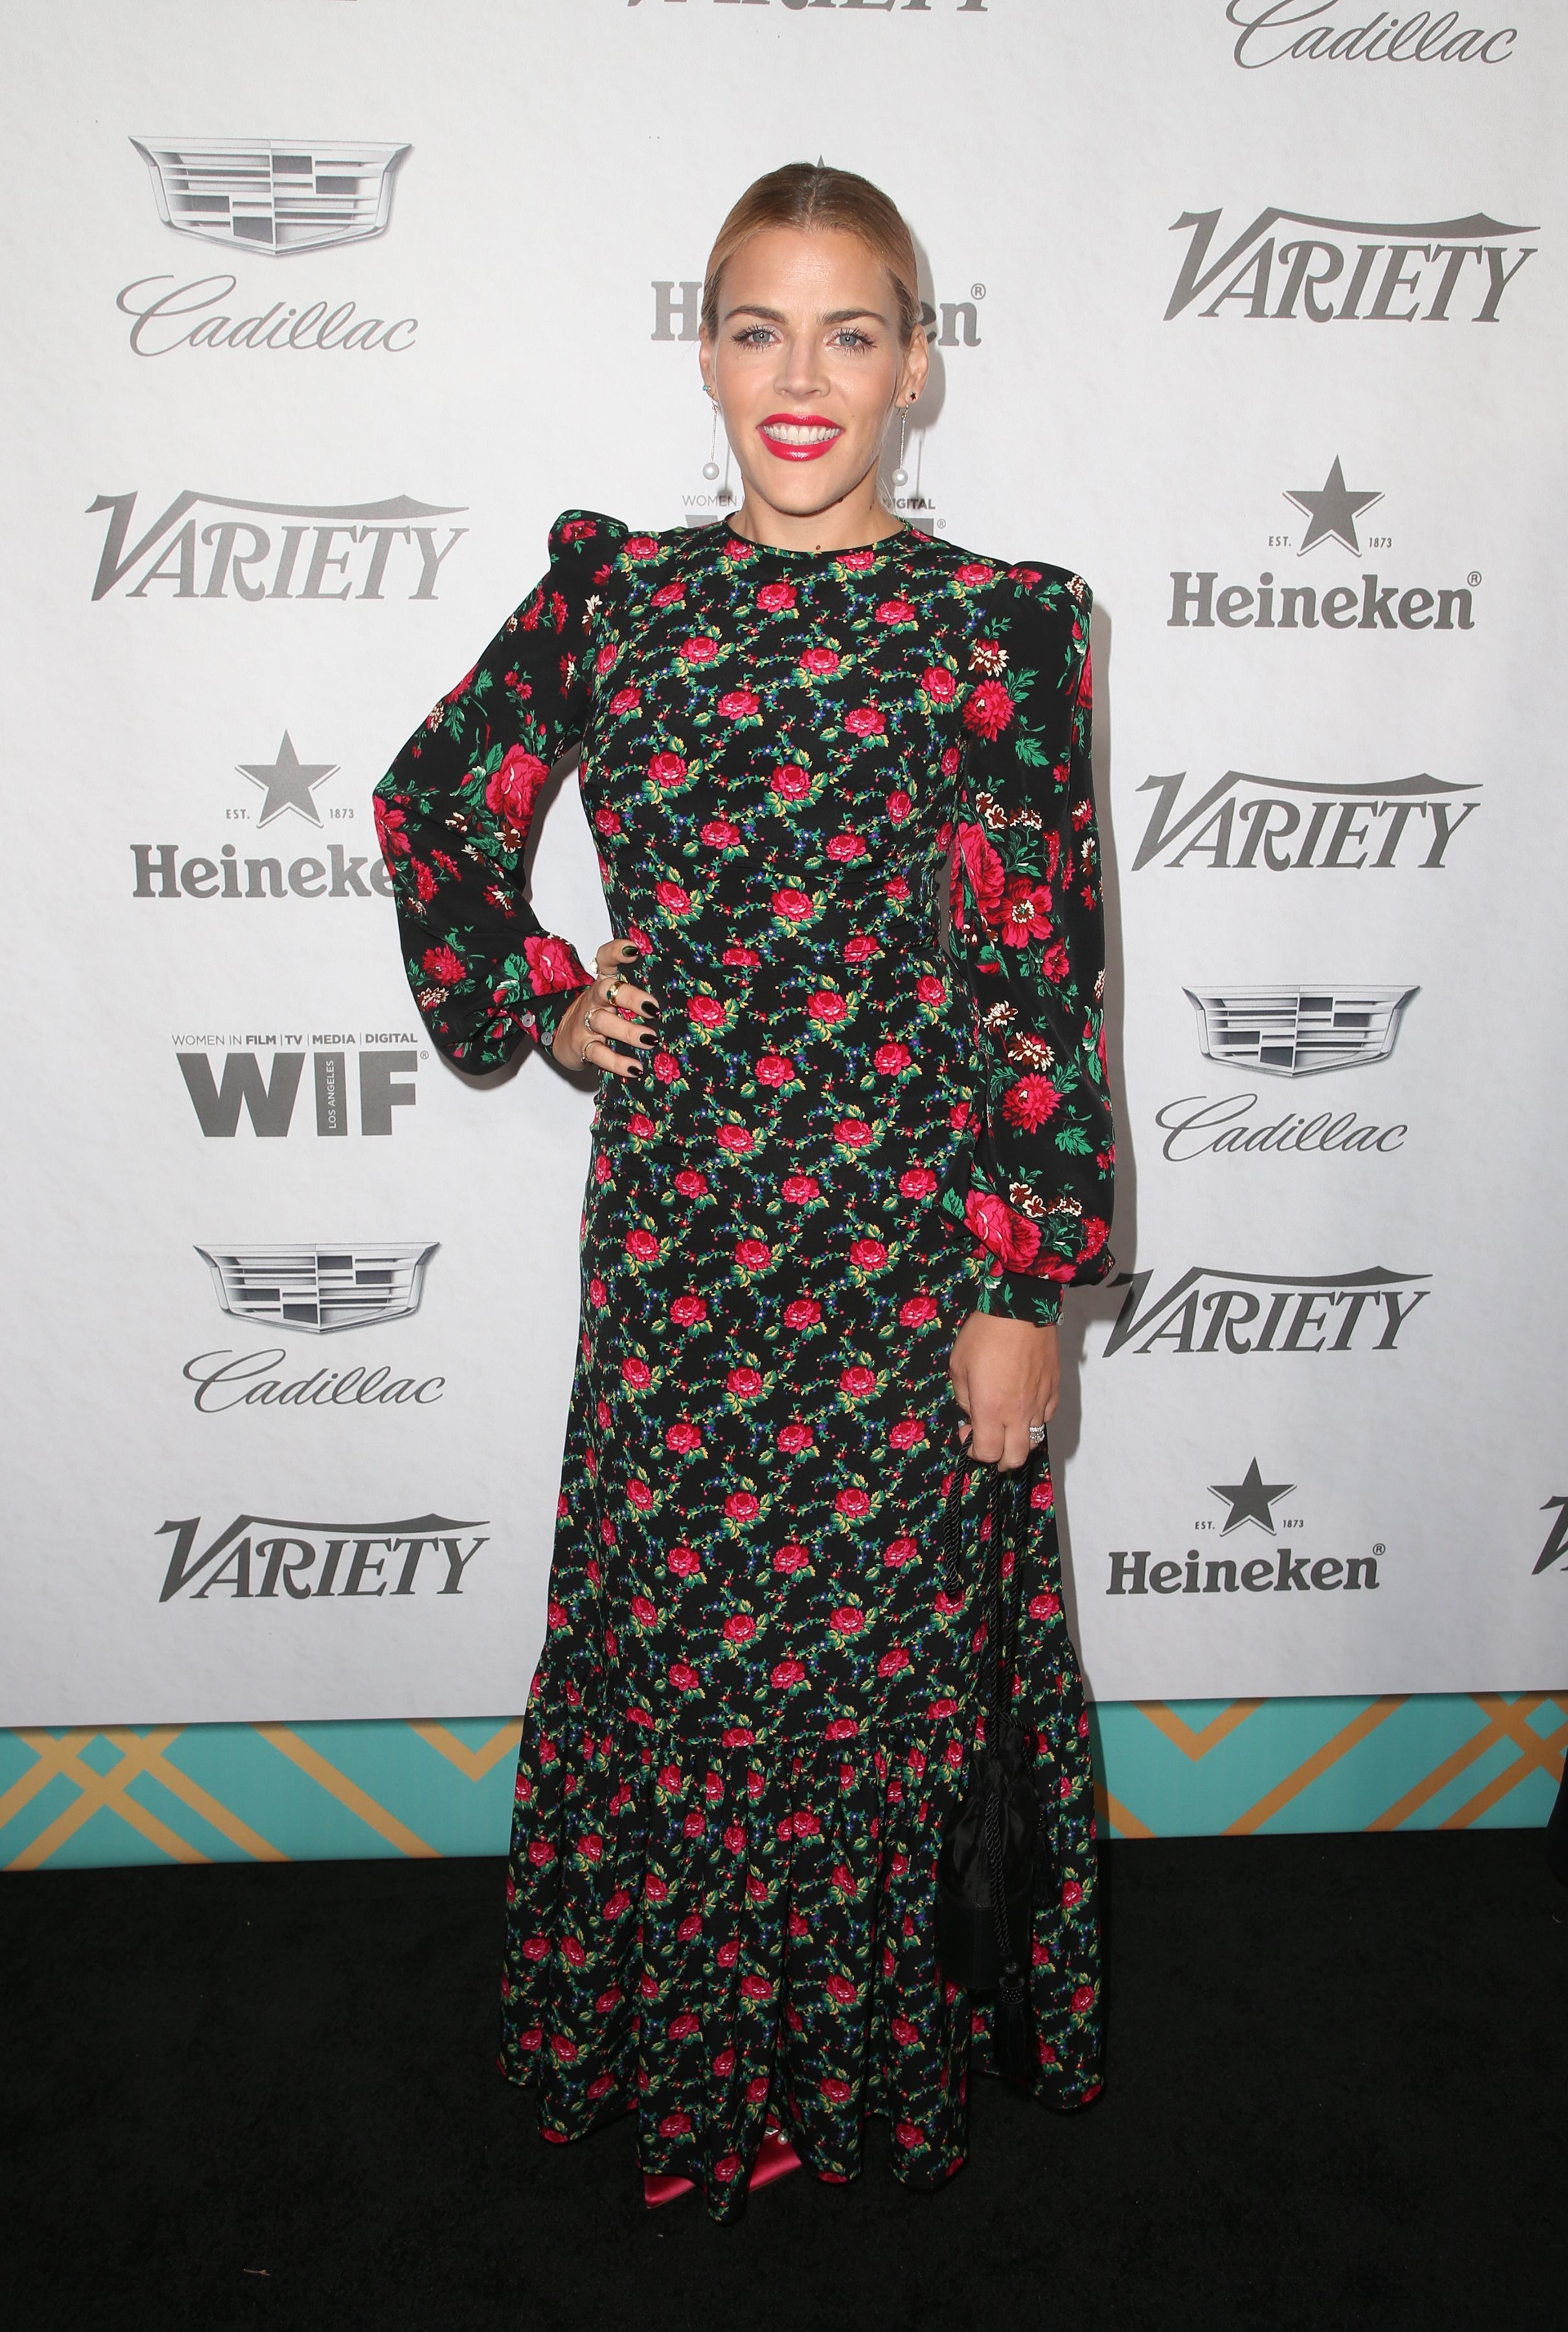 Busy Philipps attends the Variety and Women in Film Pre Emmy Party in Los Angeles on Sept. 15, 2018.